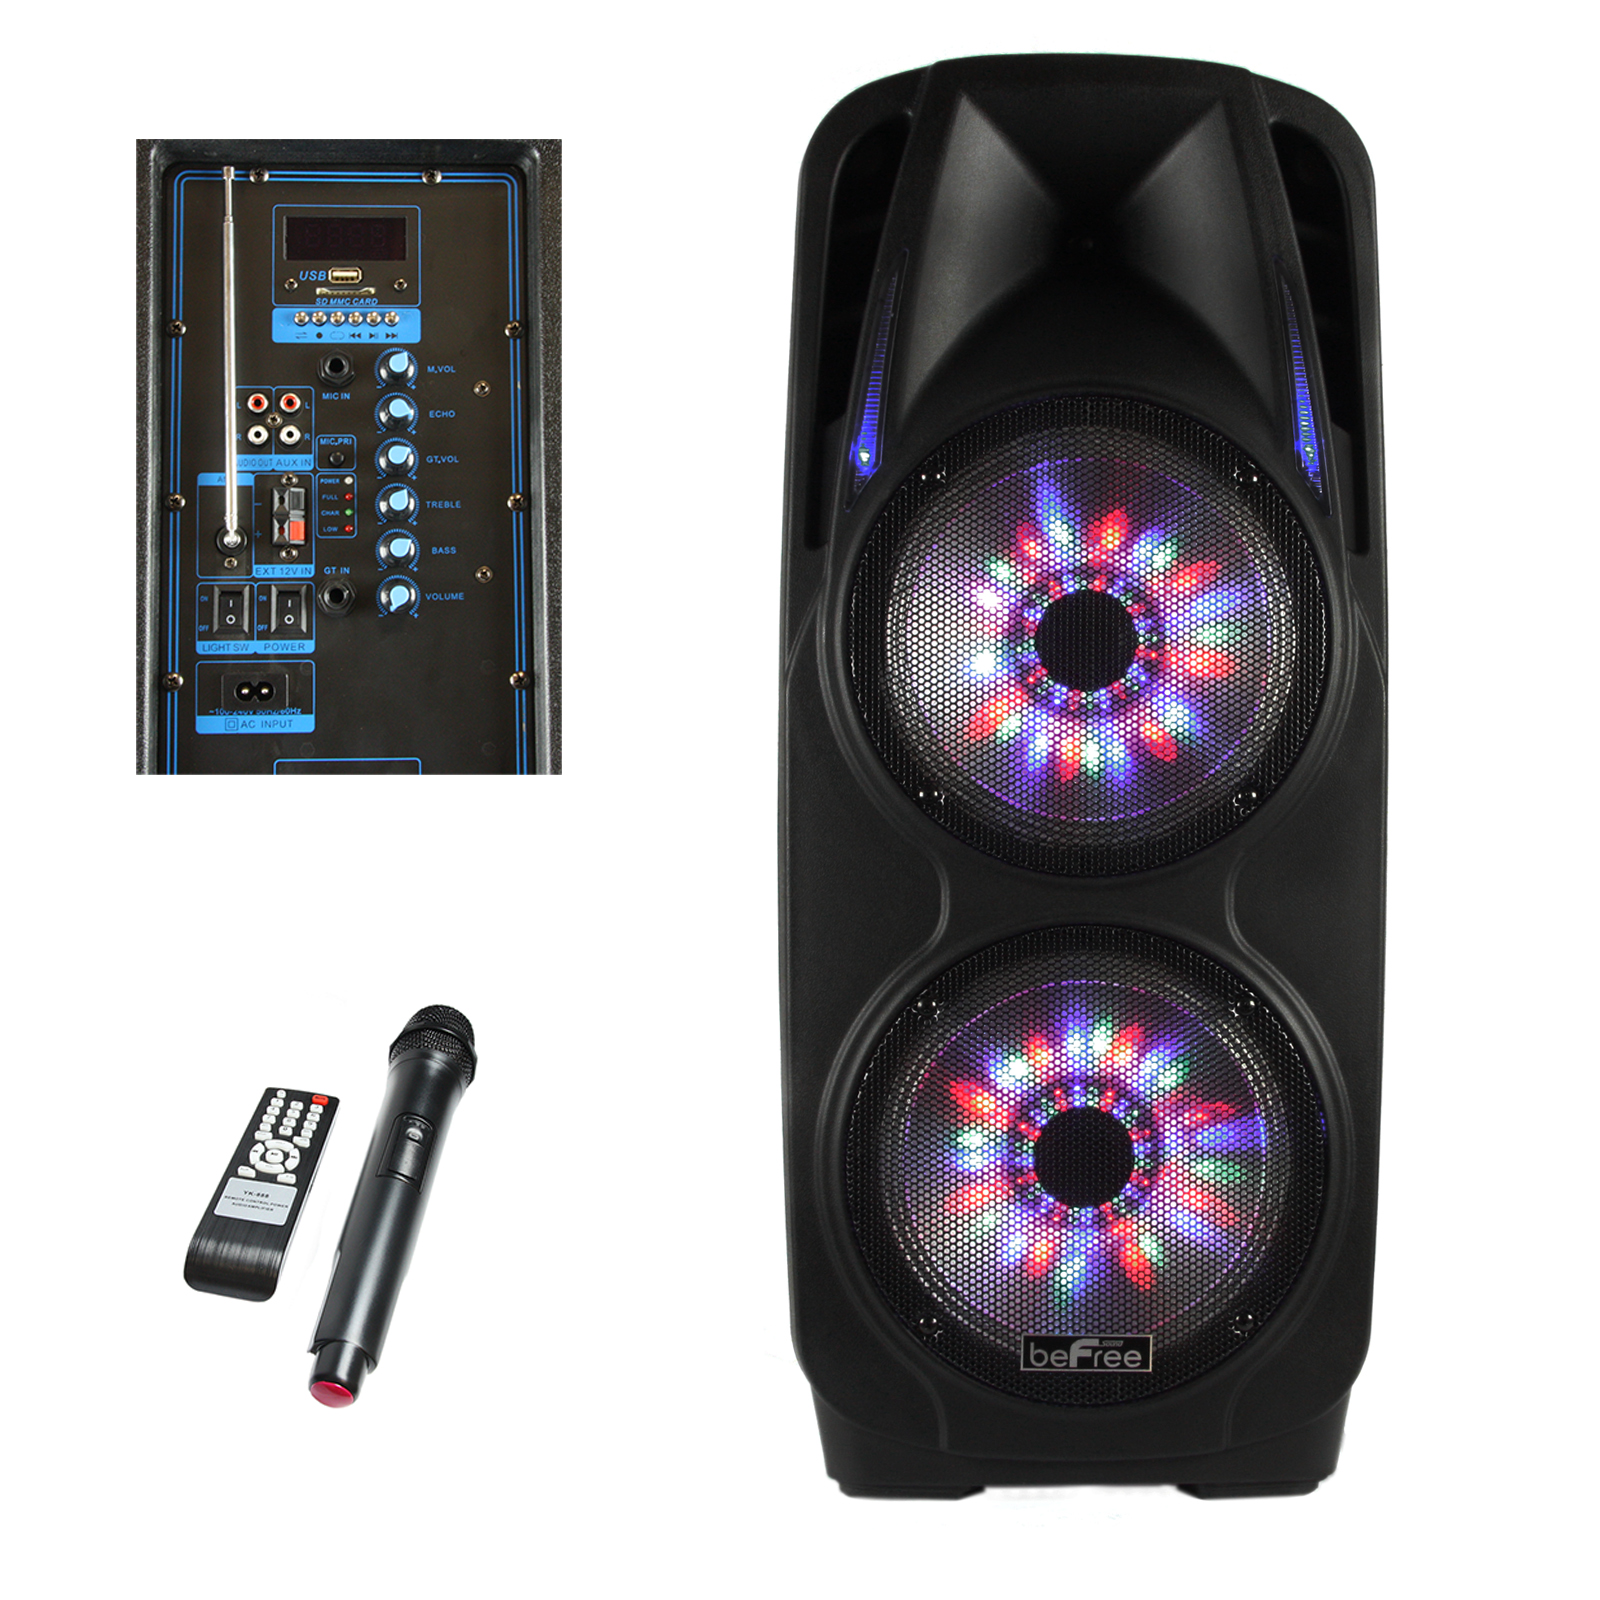 beFree Sound 2x's 10 Inch Woofer Portable Bluetooth Powered PA Tailgate Party Speaker